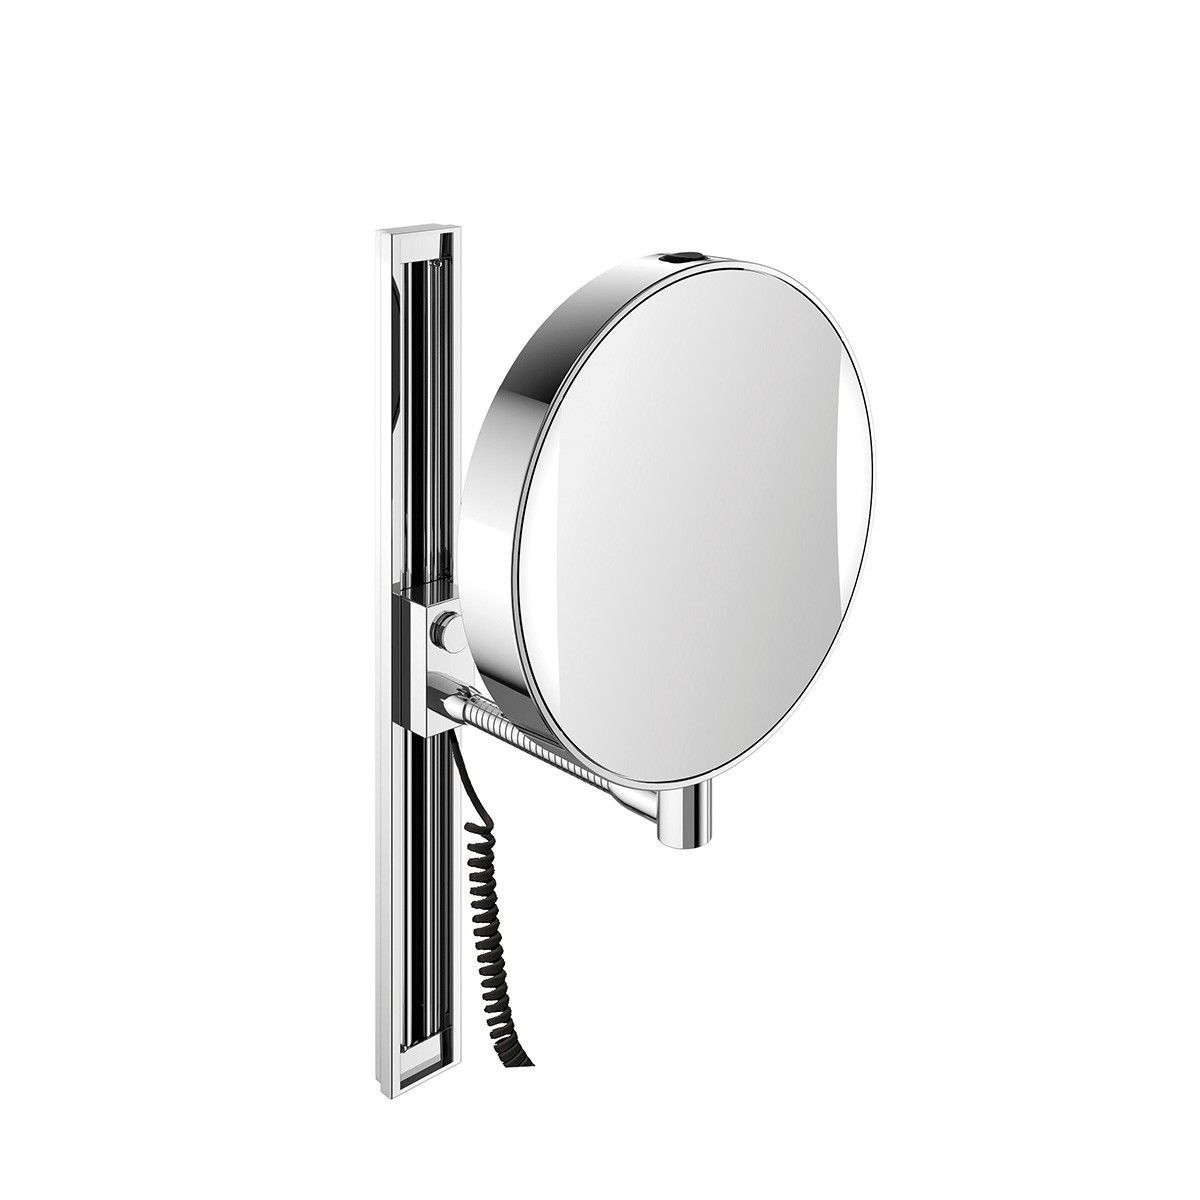 Spiegel 1095 001 12 Height Adjustable Led Lighted Magnifying Mirror 7x 3x Magnifying Mirror Mirror Wall Mounted Magnifying Mirror